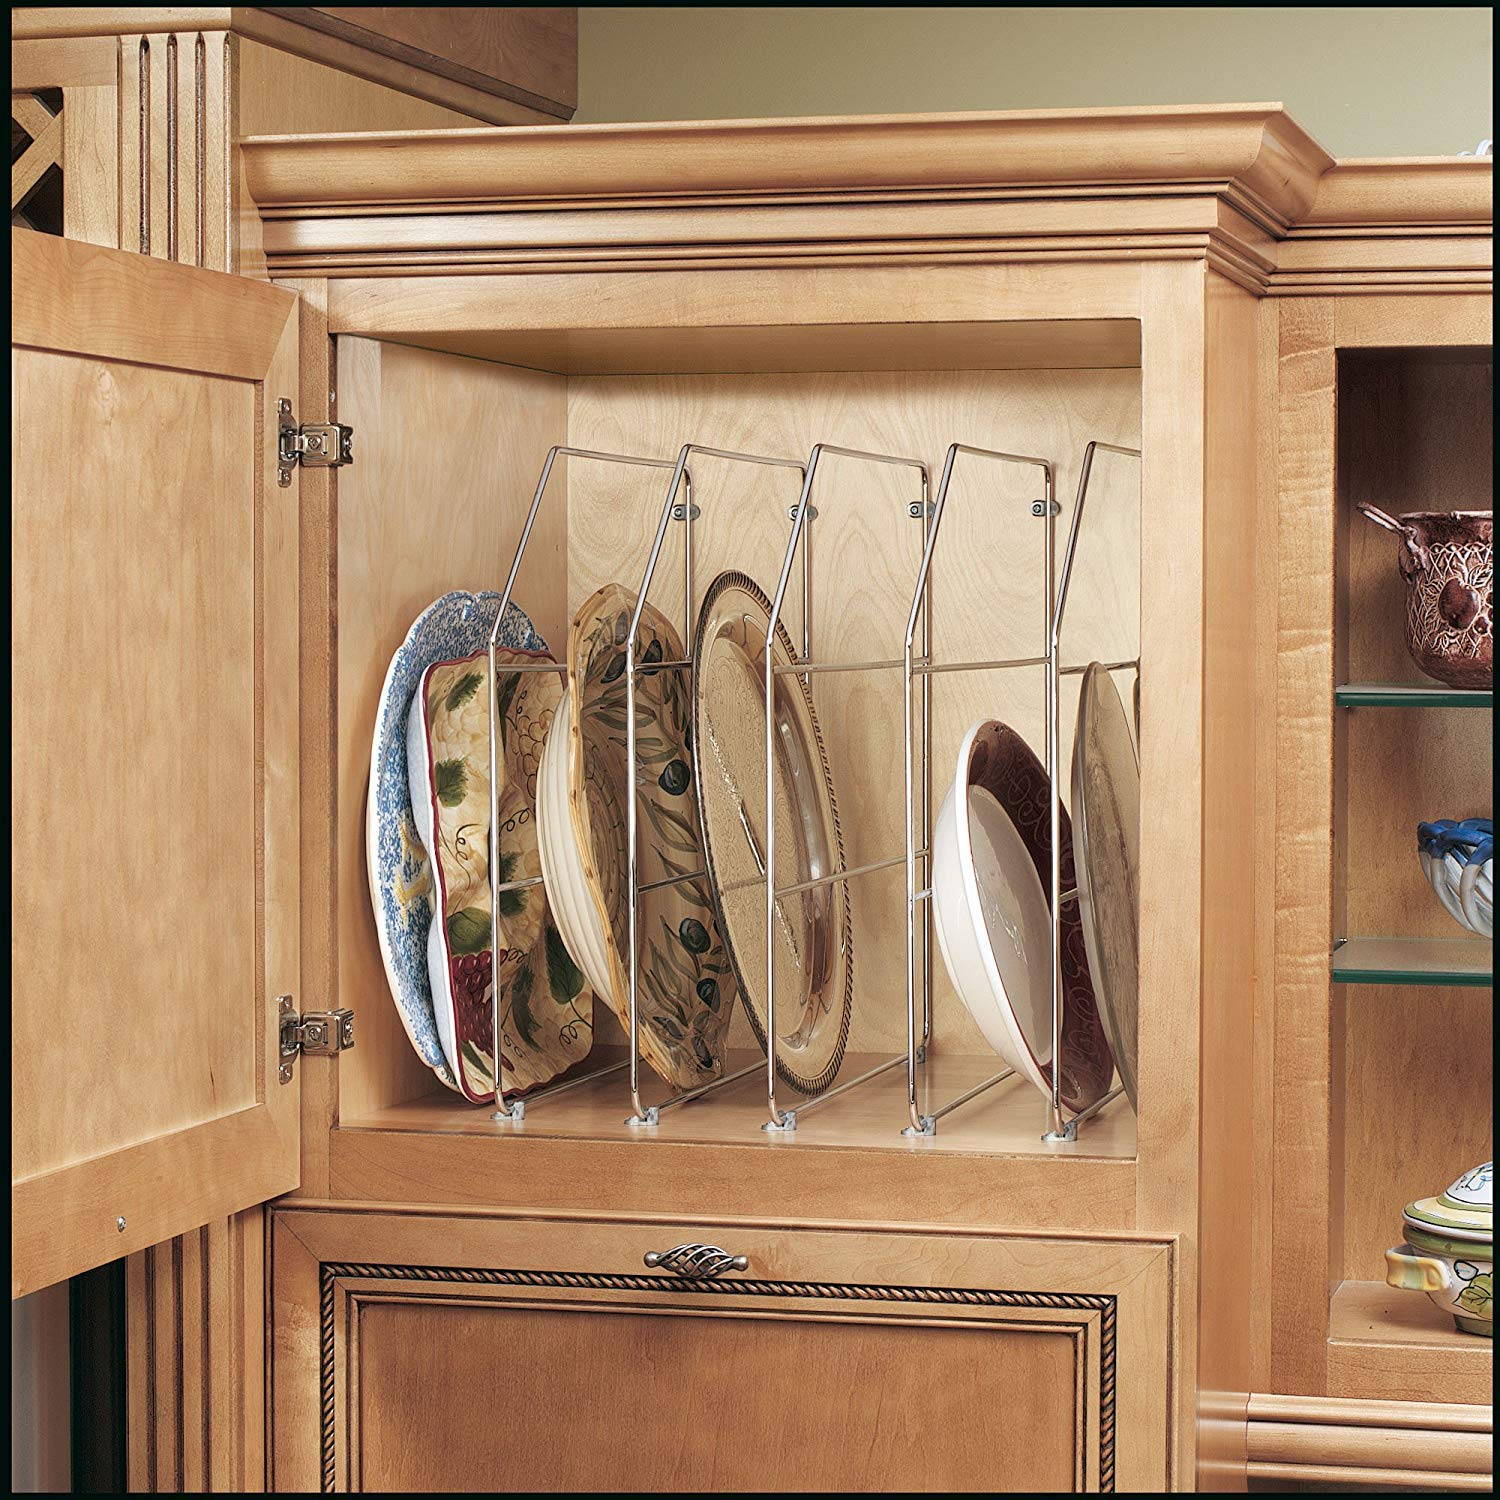 Kitchen Dining Chrome Bakeware And Tray Divider 5 Units 597 18cr 52 Single 18 In Rev A Shelf Storage Organization